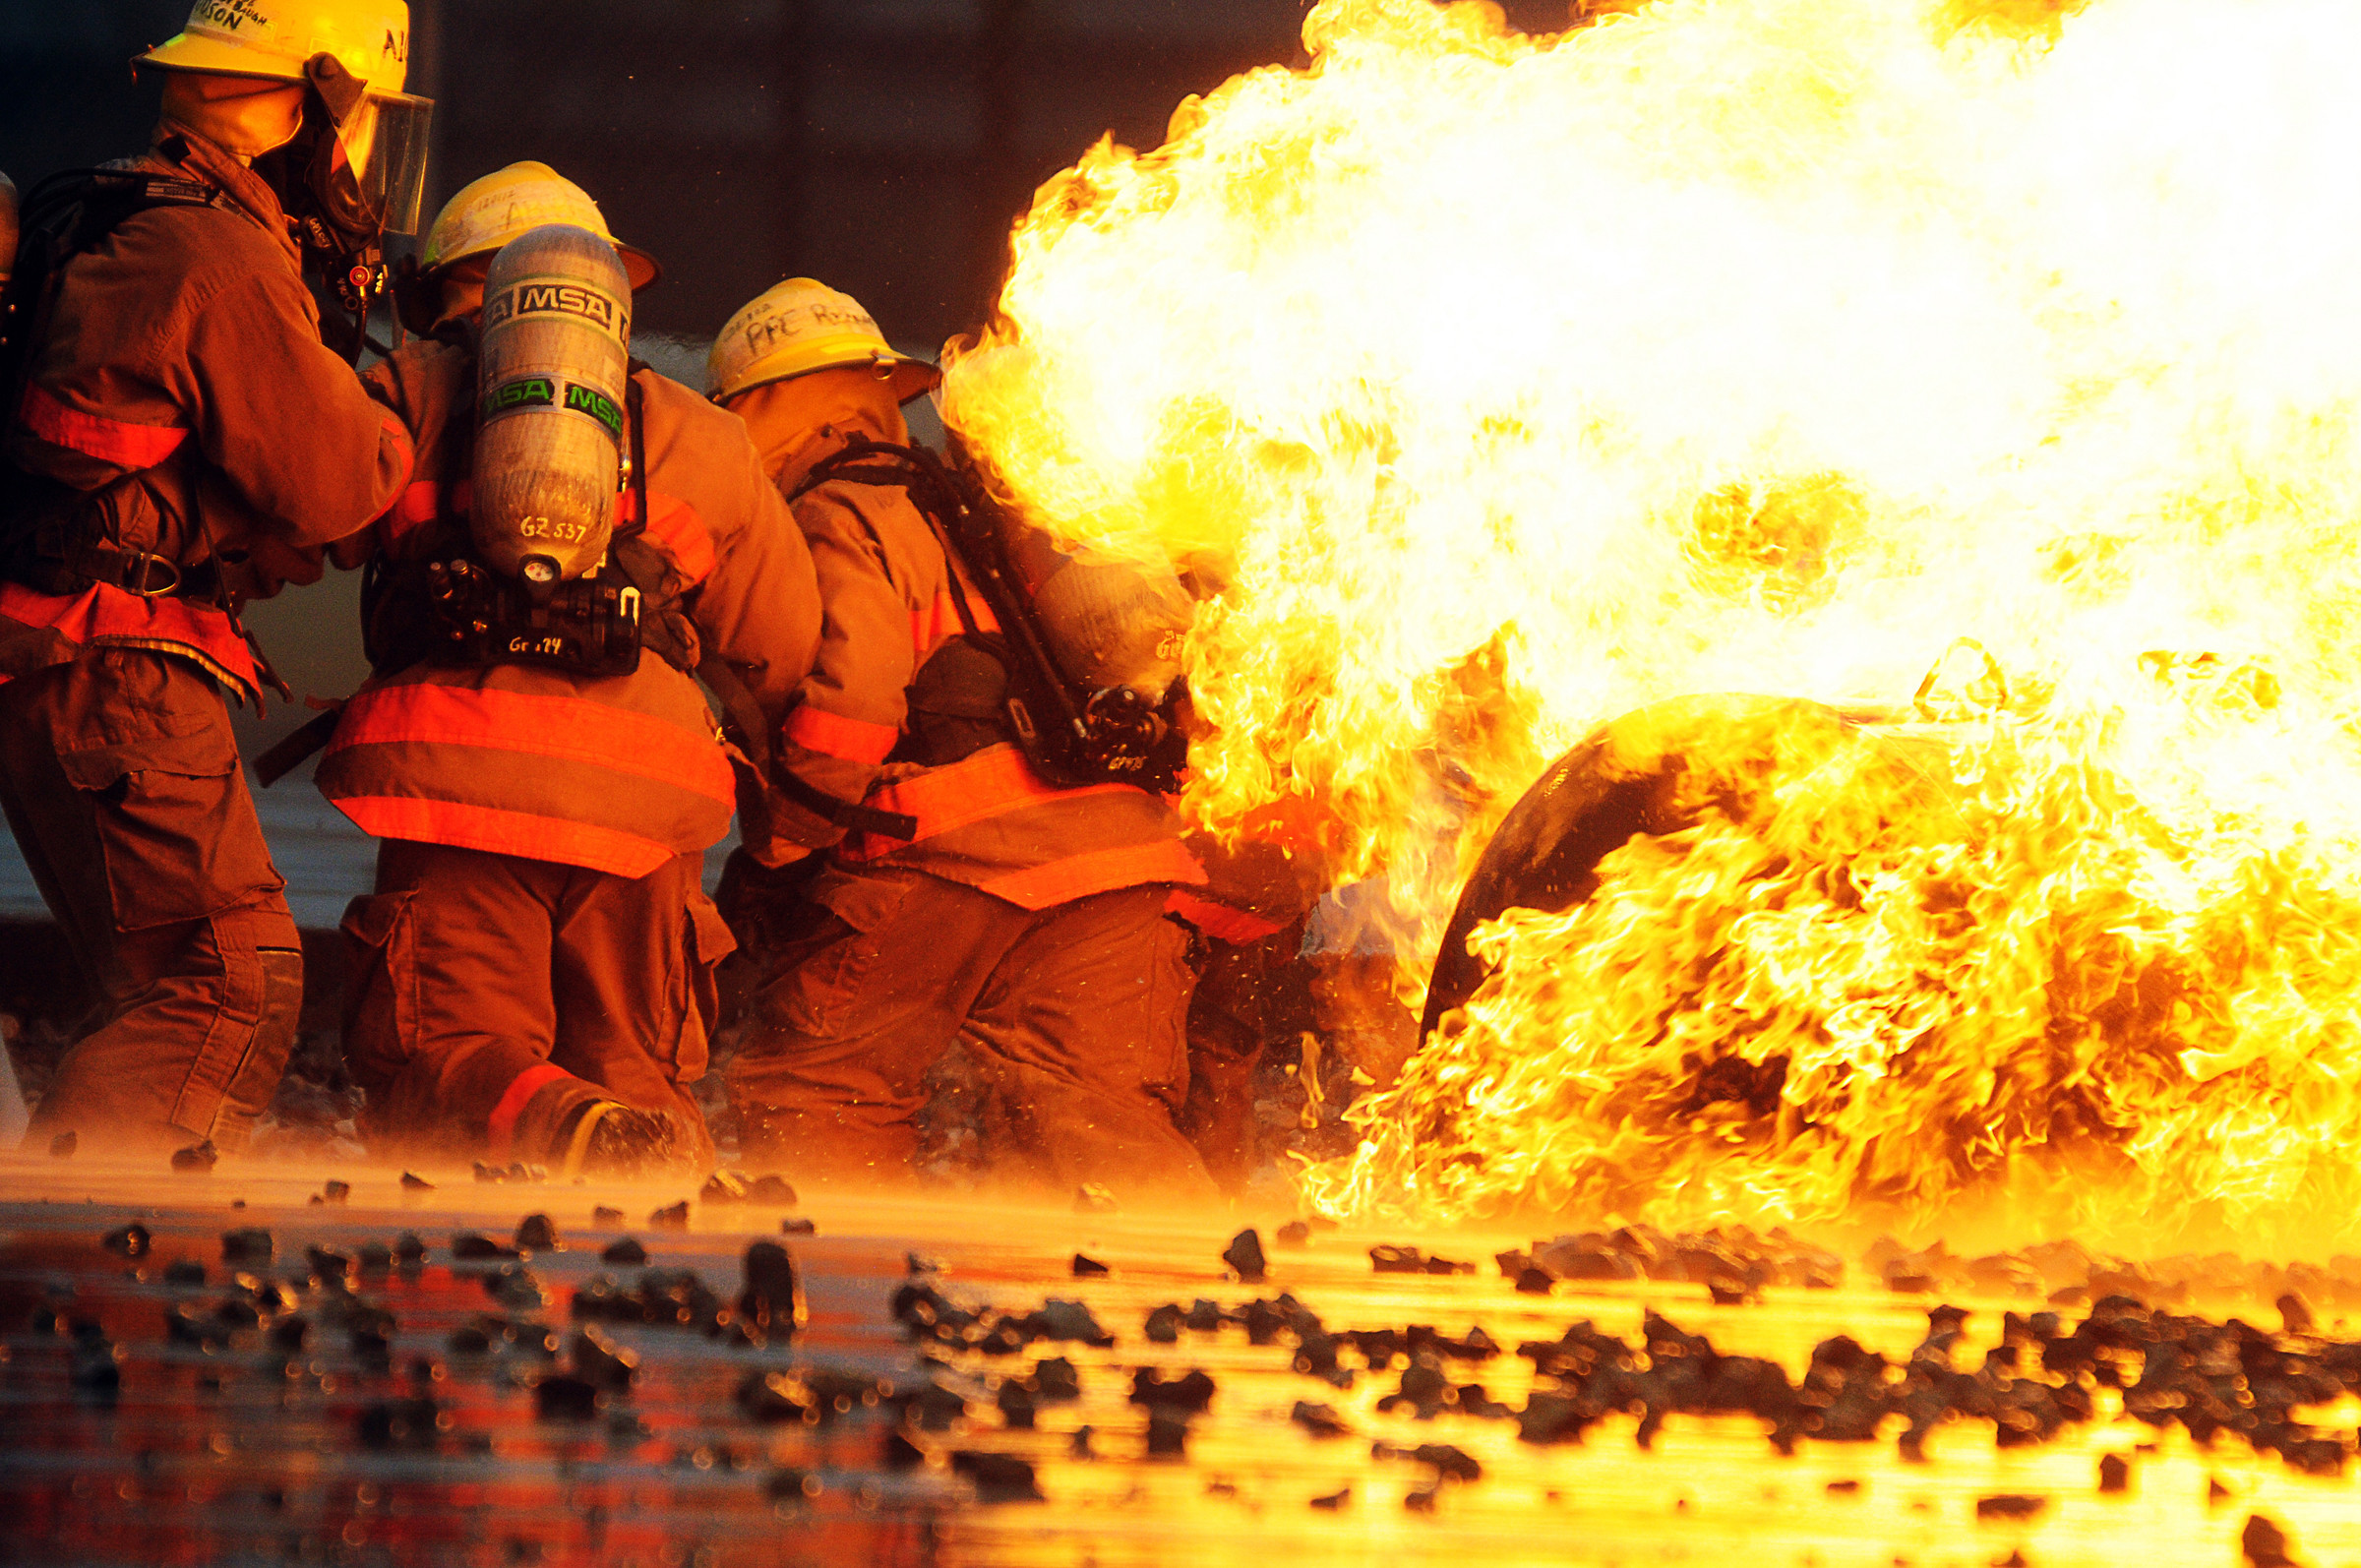 Firefighter Photography | Wallpaper, photos, wildland, firefighter .